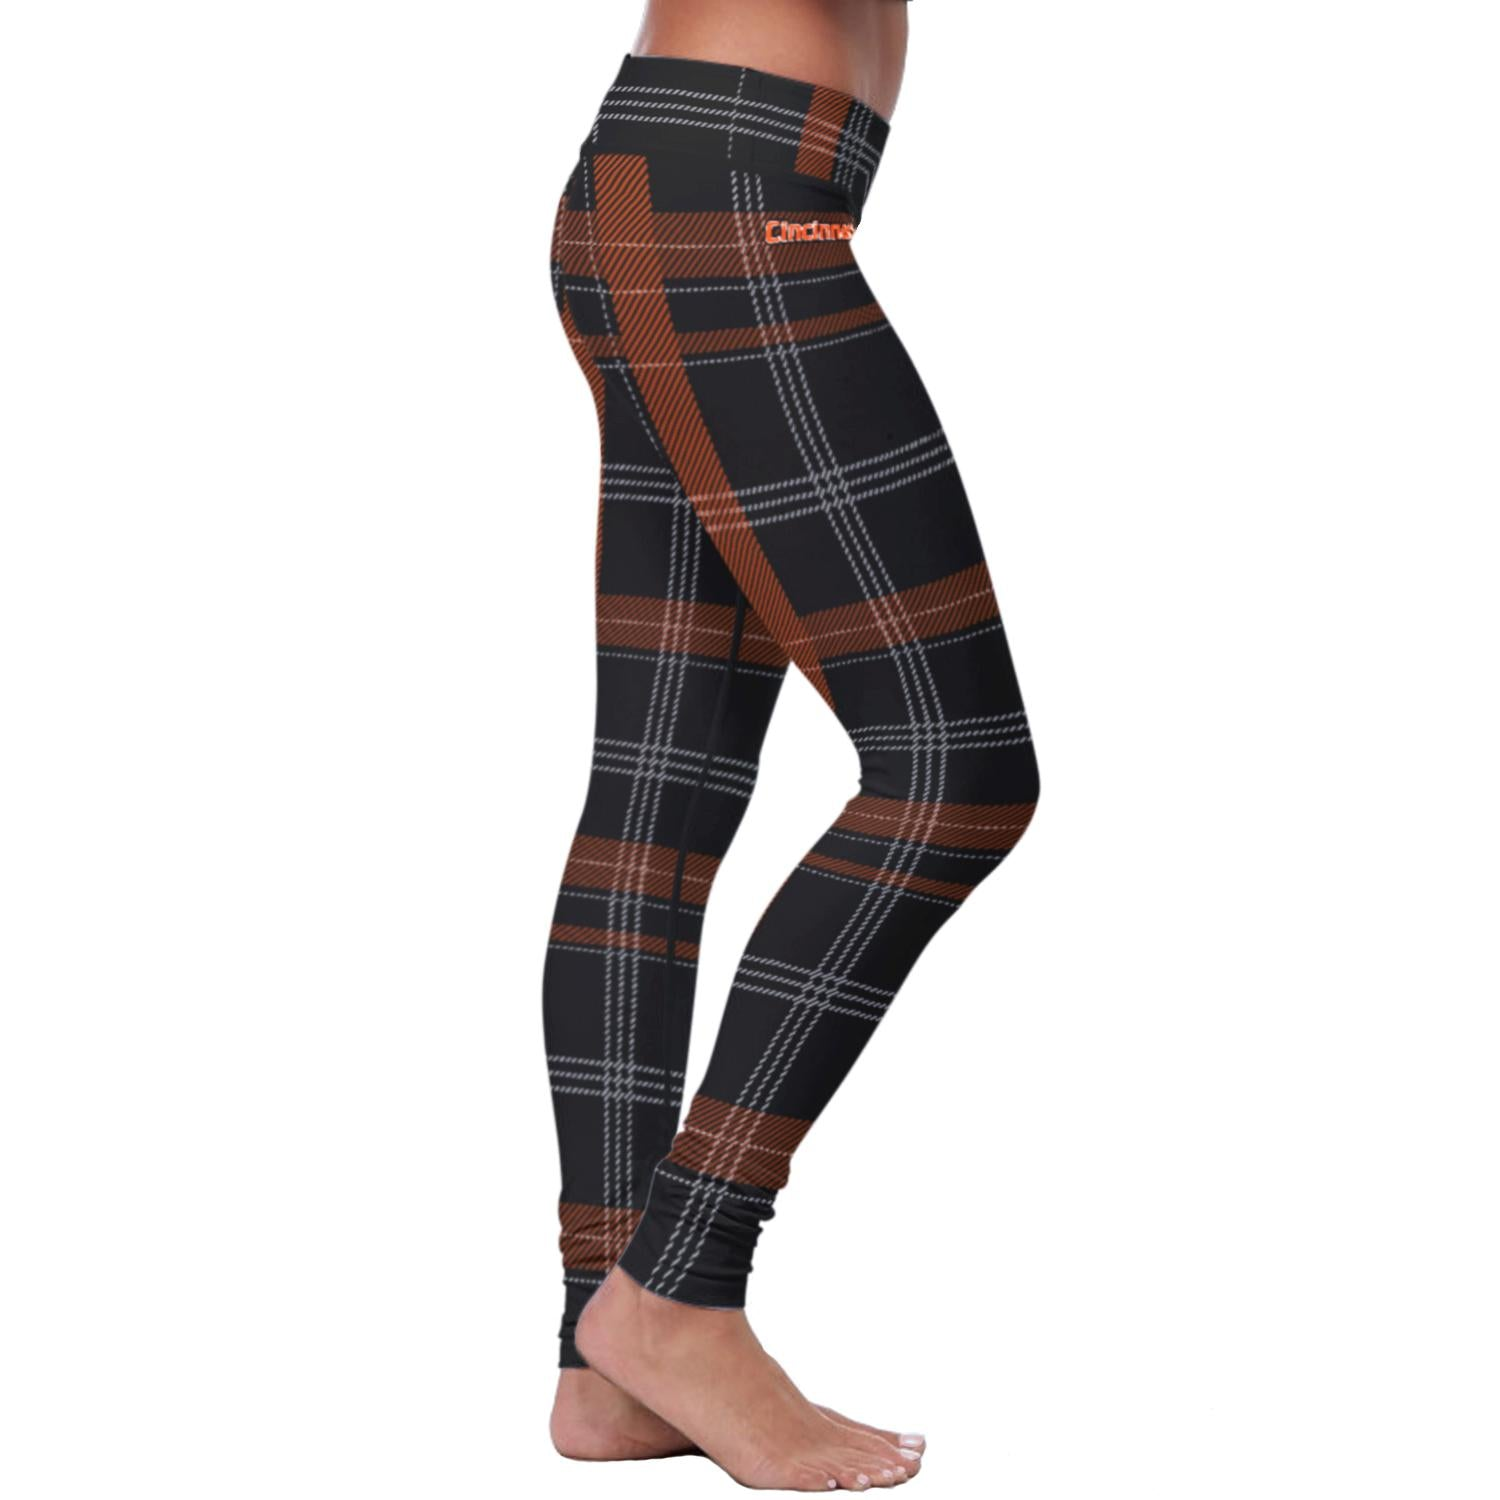 Cincinnati Football Plaid Leggings